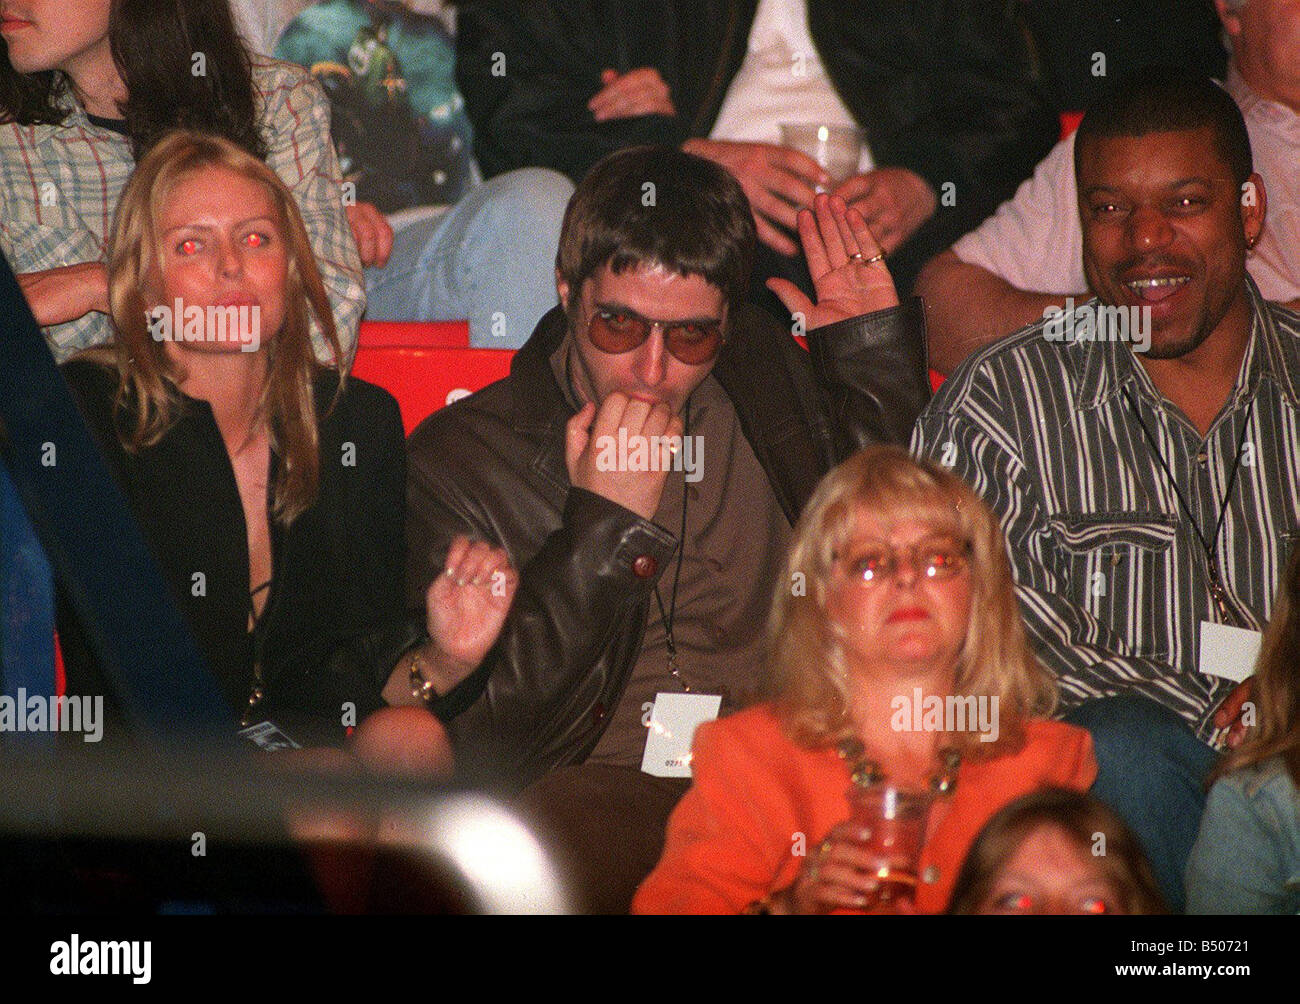 Liam Gallagher Of Oasis And His Wife Patsy Kensit At The Who Concert  Wembley Arena